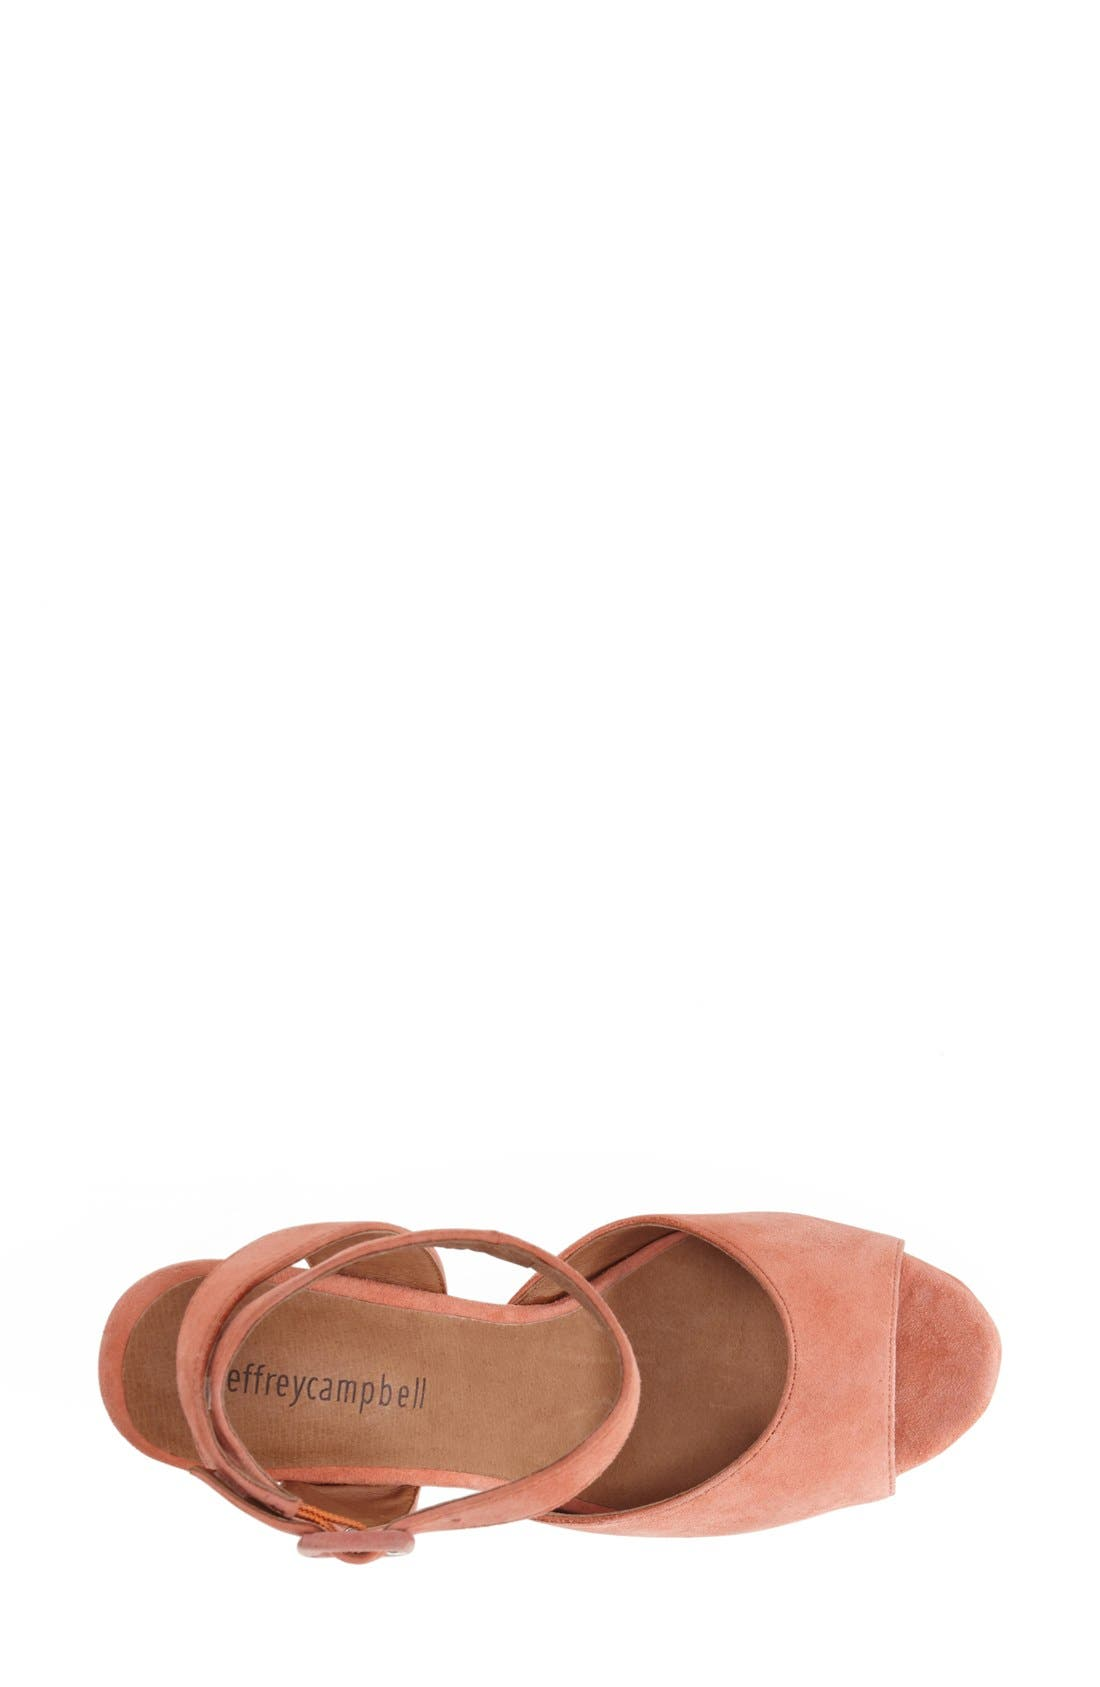 Alternate Image 3  - Jeffrey Campbell 'Sassy' Wood Platform Sandal (Women)